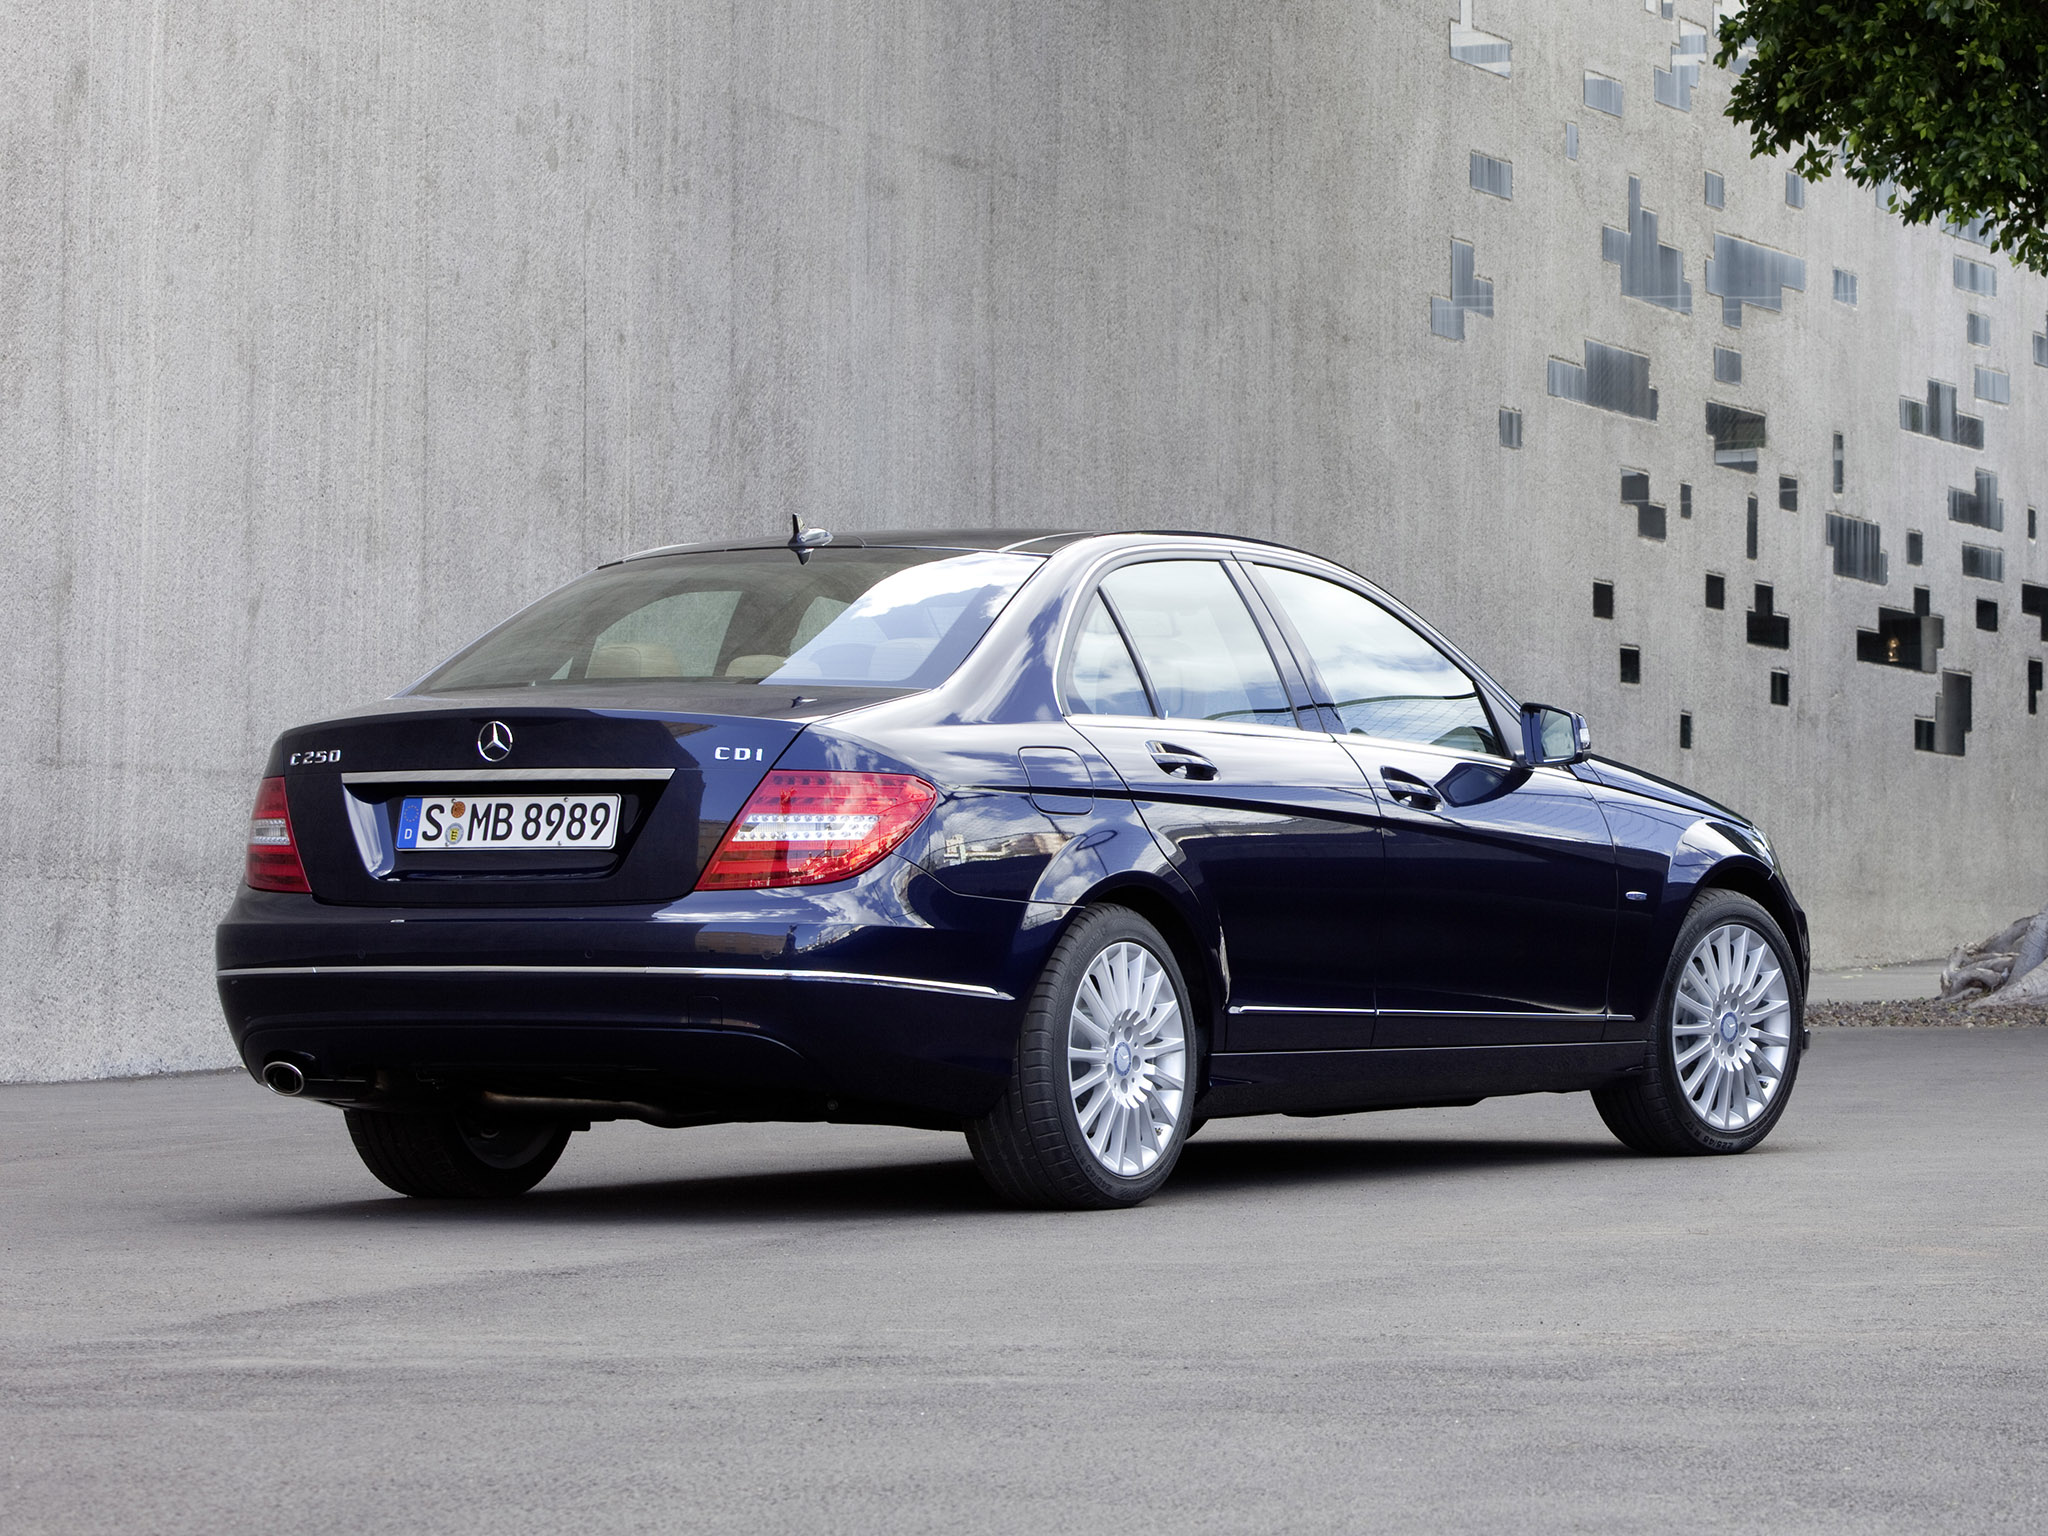 mercedes c klasse c250 cdi sedan 2011 mercedes c klasse c250 cdi sedan 2011 photo 04 car in. Black Bedroom Furniture Sets. Home Design Ideas